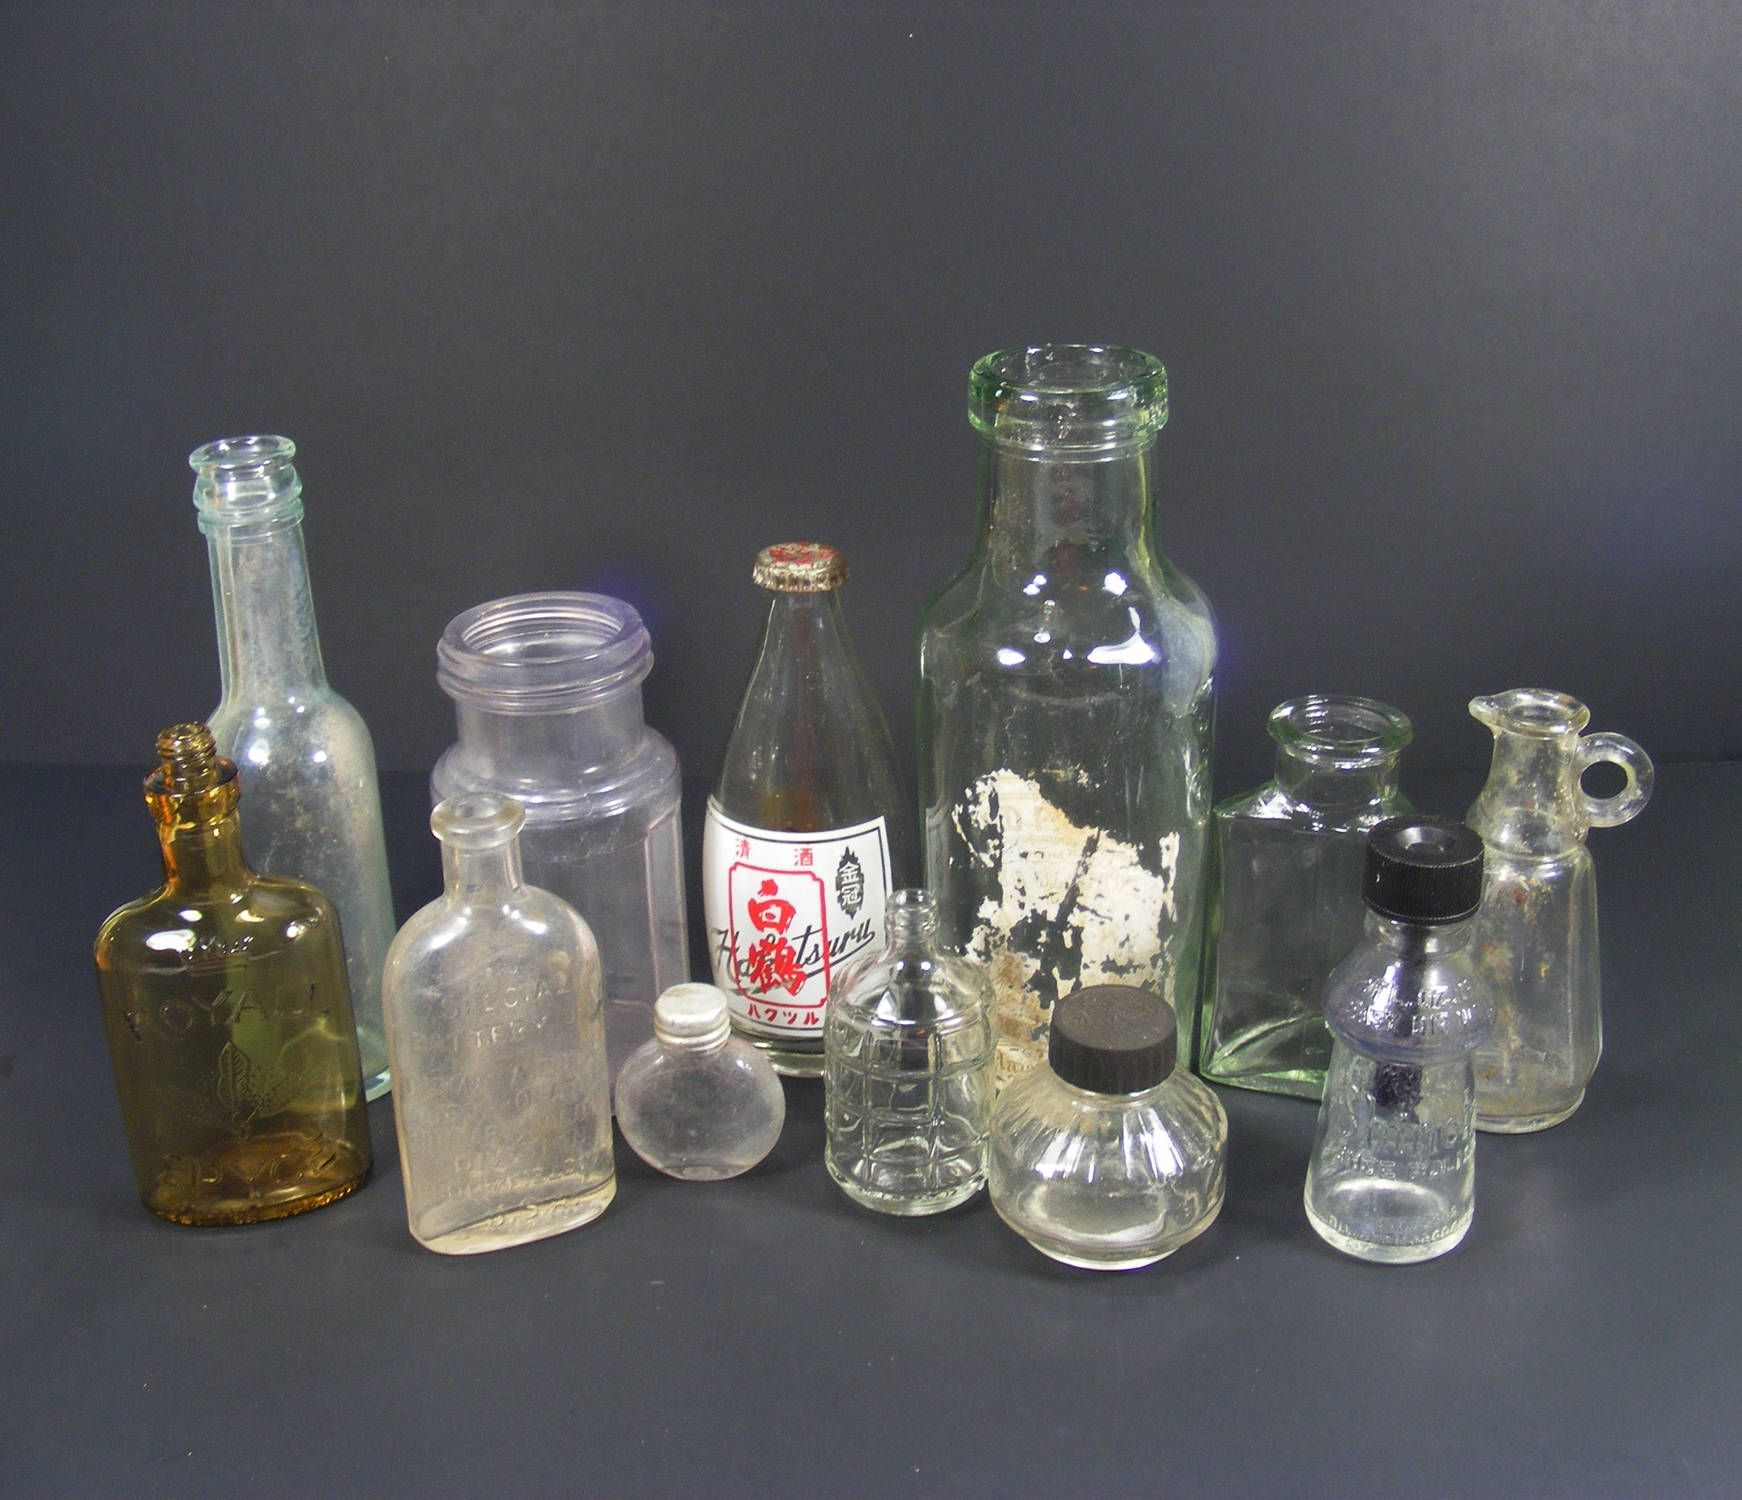 Old Glass Bottle Collection Of 12 Vintage And Antique Glass